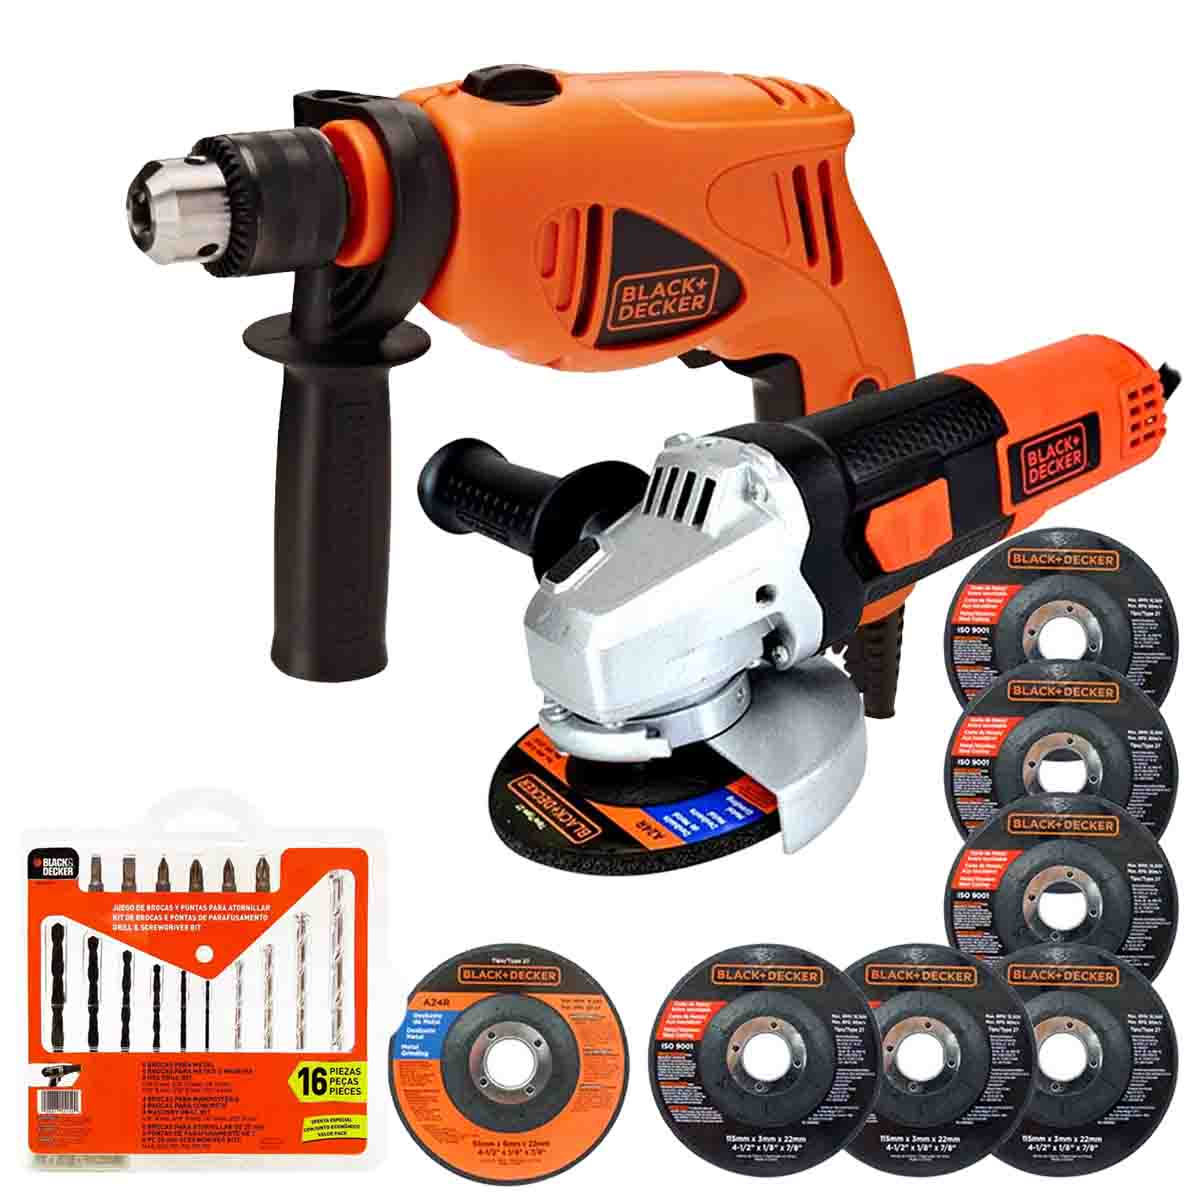 Kit Black&decker Rotomartillo Y Esmeriladora 16 Acc. 6 Disco